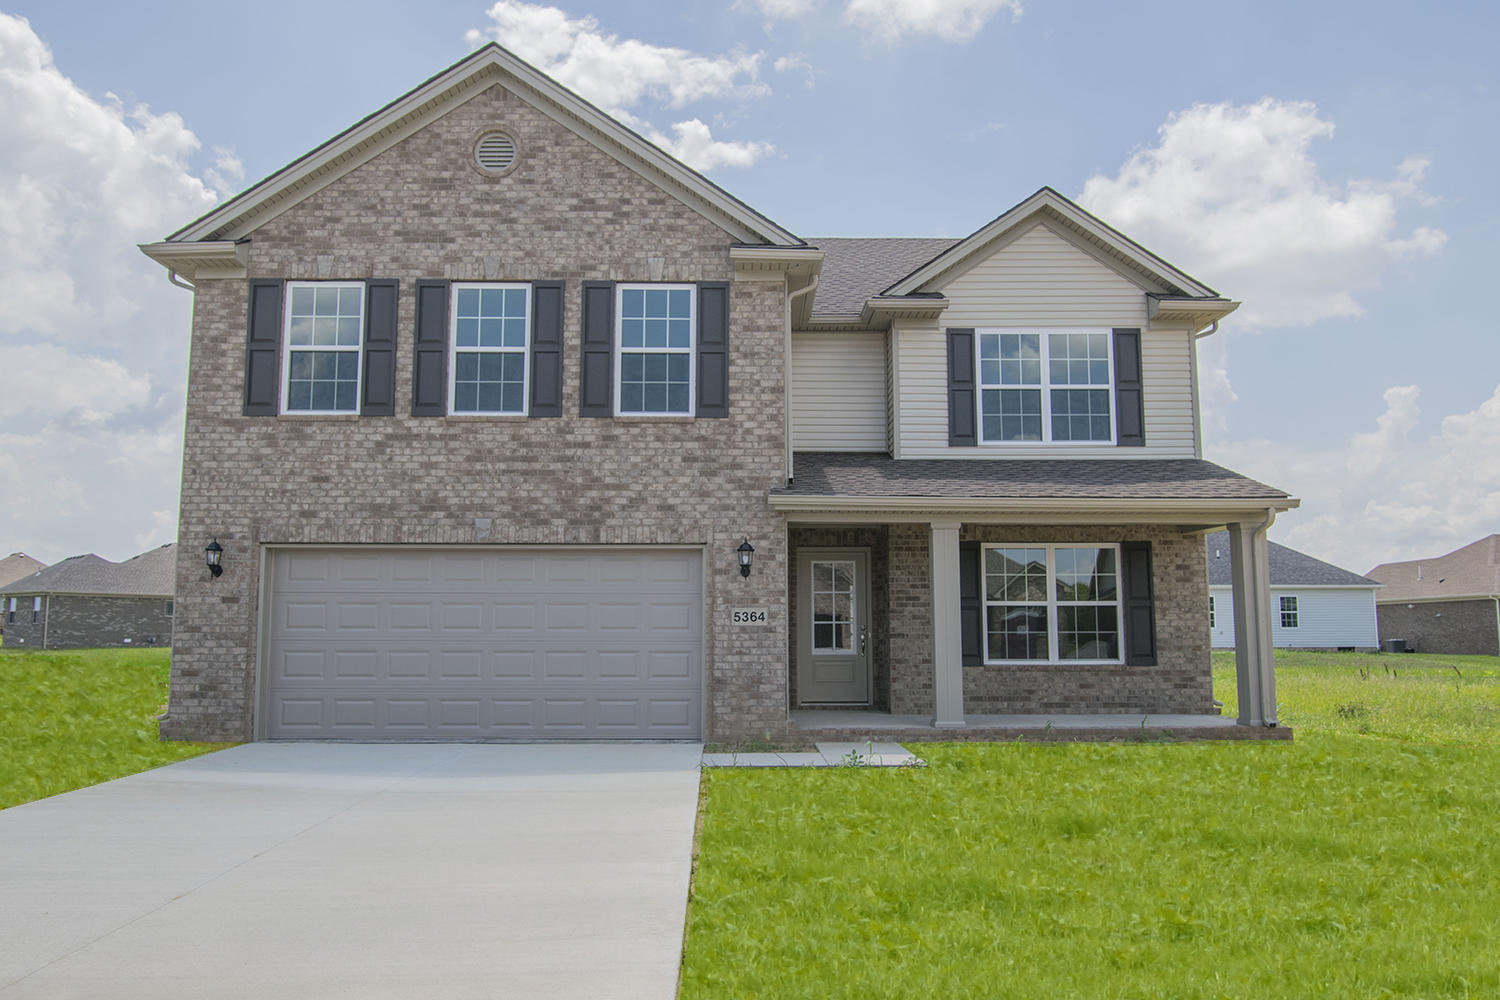 Patriot Plan, Bowling Green, KY 42104 - 4 Bed, 2 5 Bath Single-Family Home  - 51 Photos | Trulia